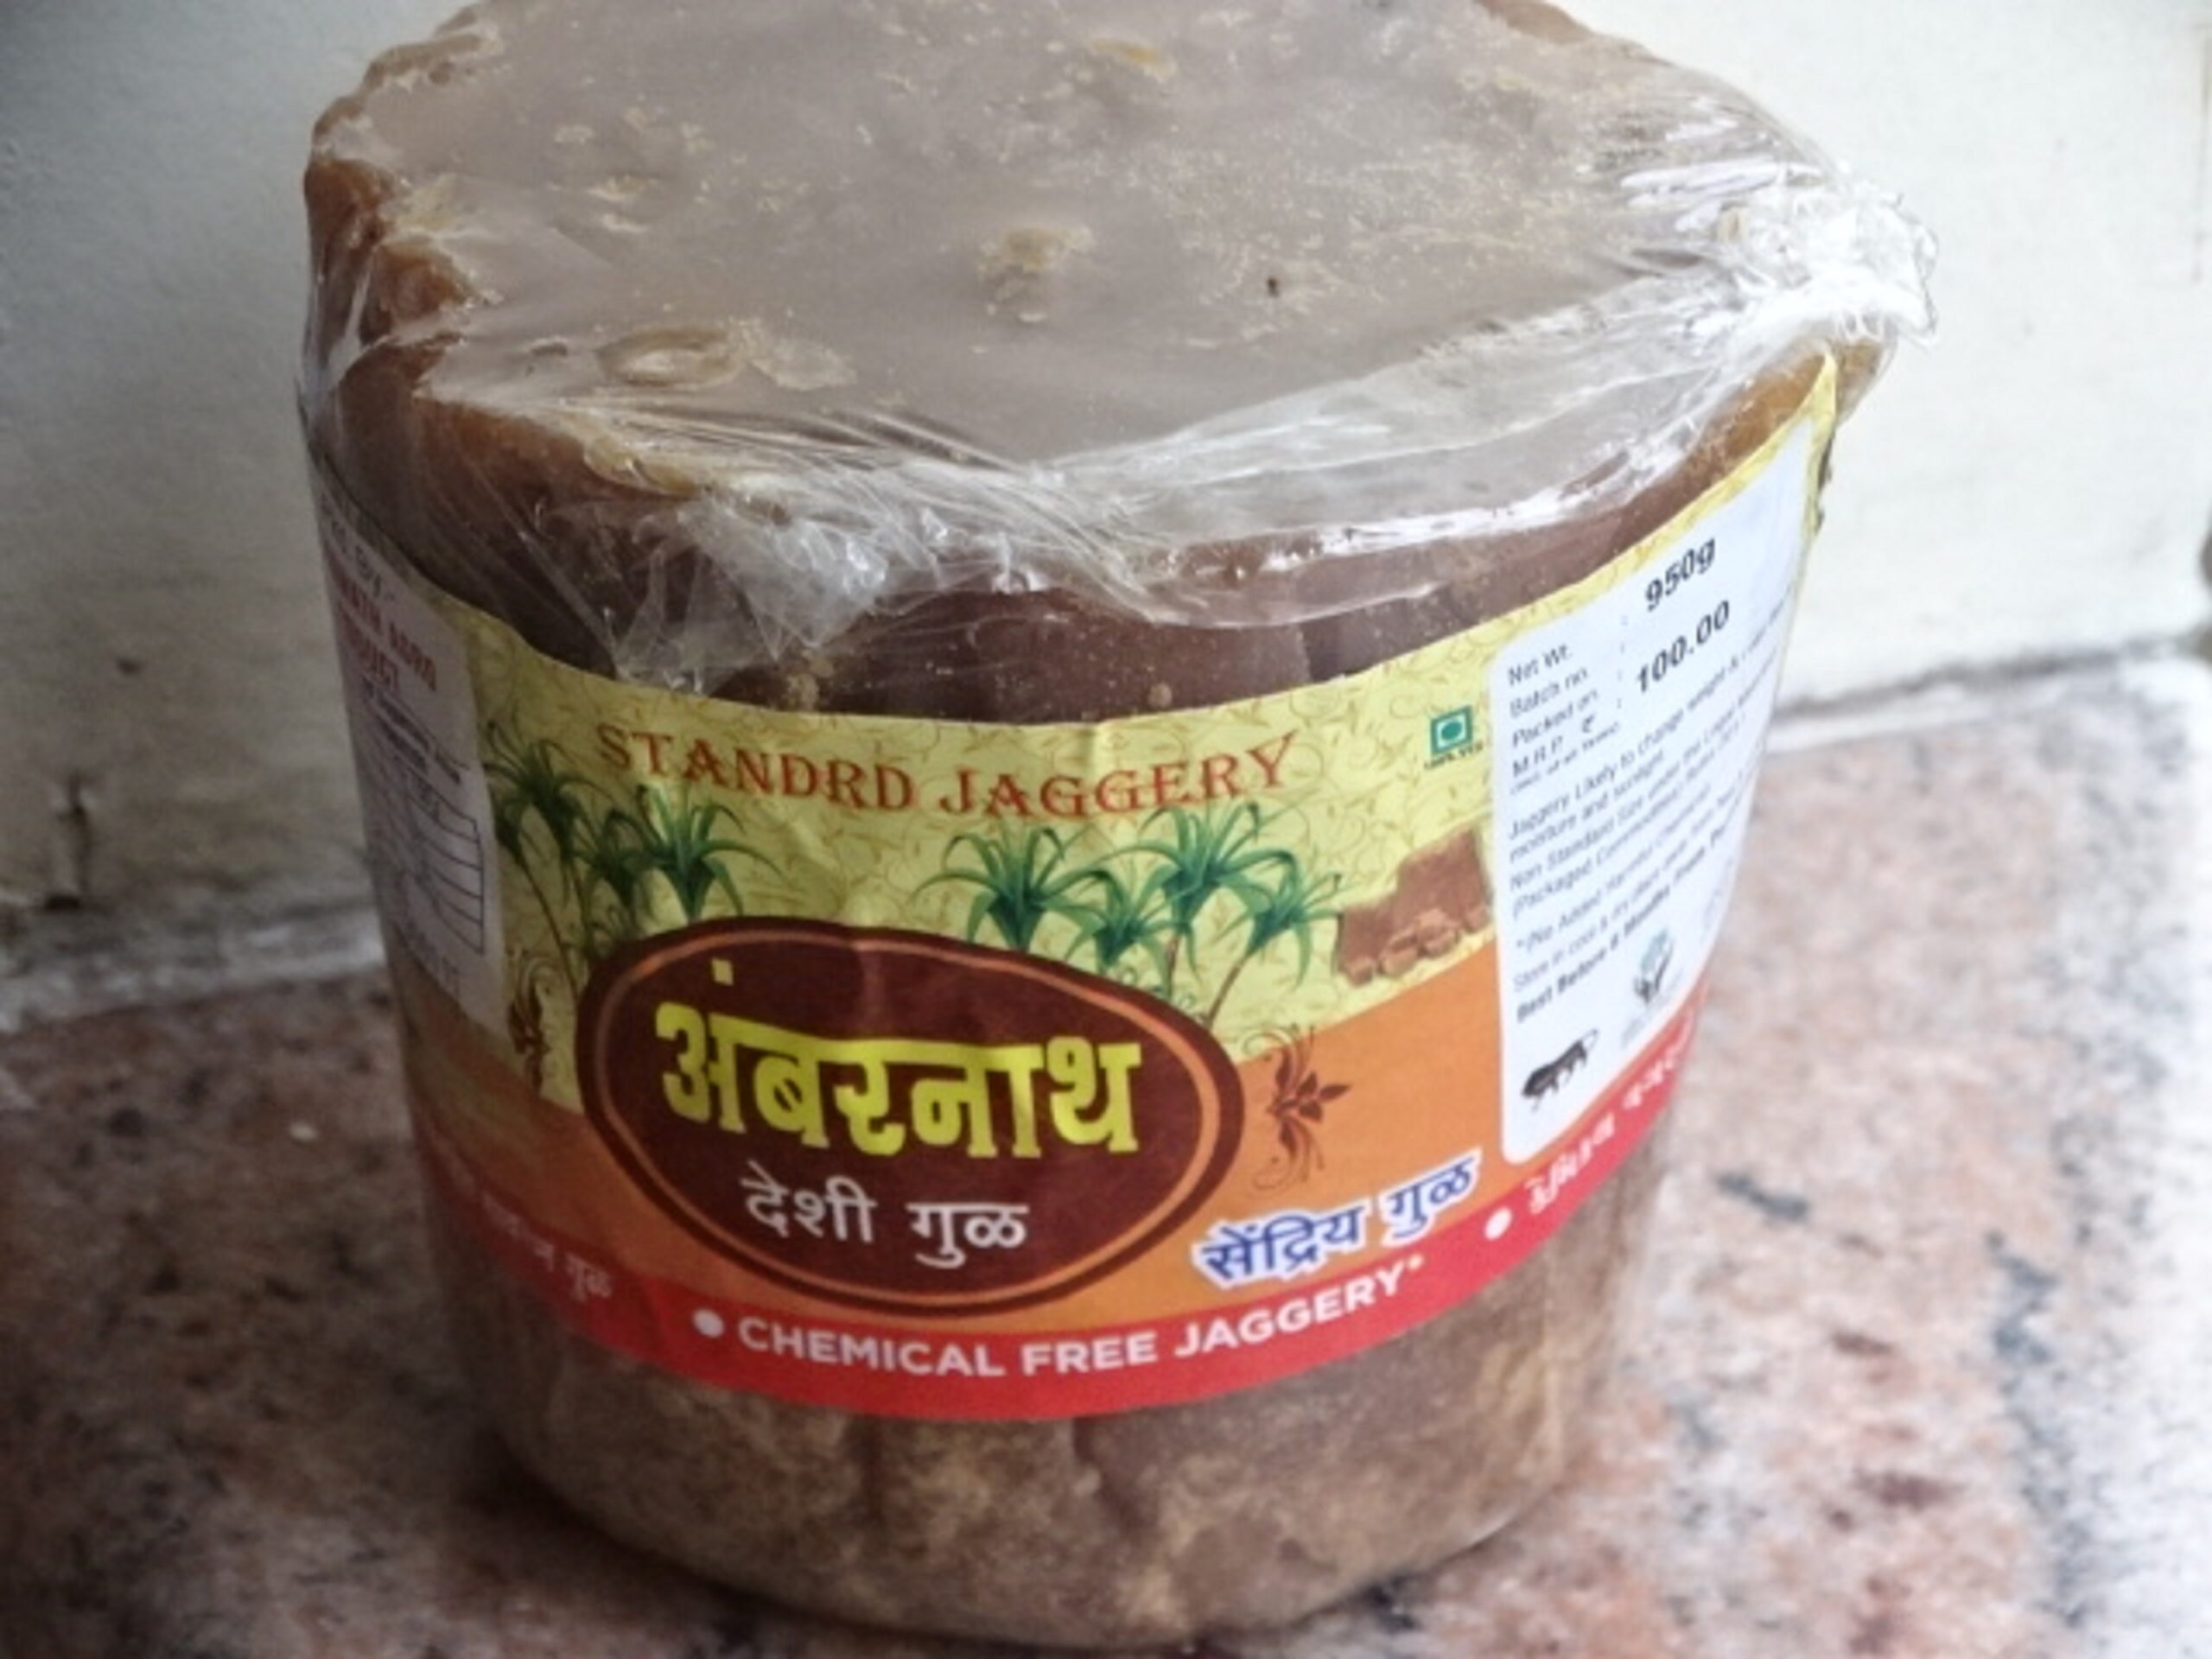 Jaggery (gud) purchased during Shani Shingnapur to Shirdi journey by Force Traveller Passenger Carrier